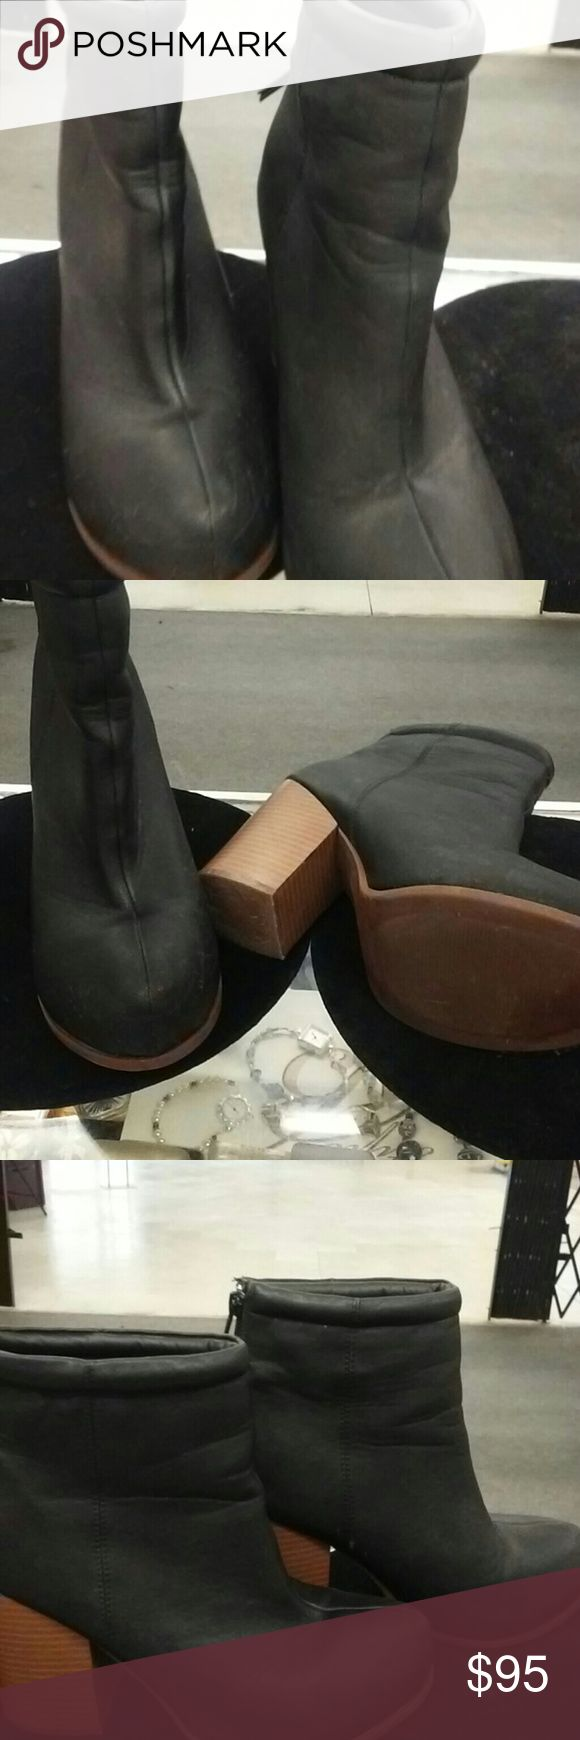 Ladies leather boots Black leather ankle boots size 8.5 Shoes Heeled Boots